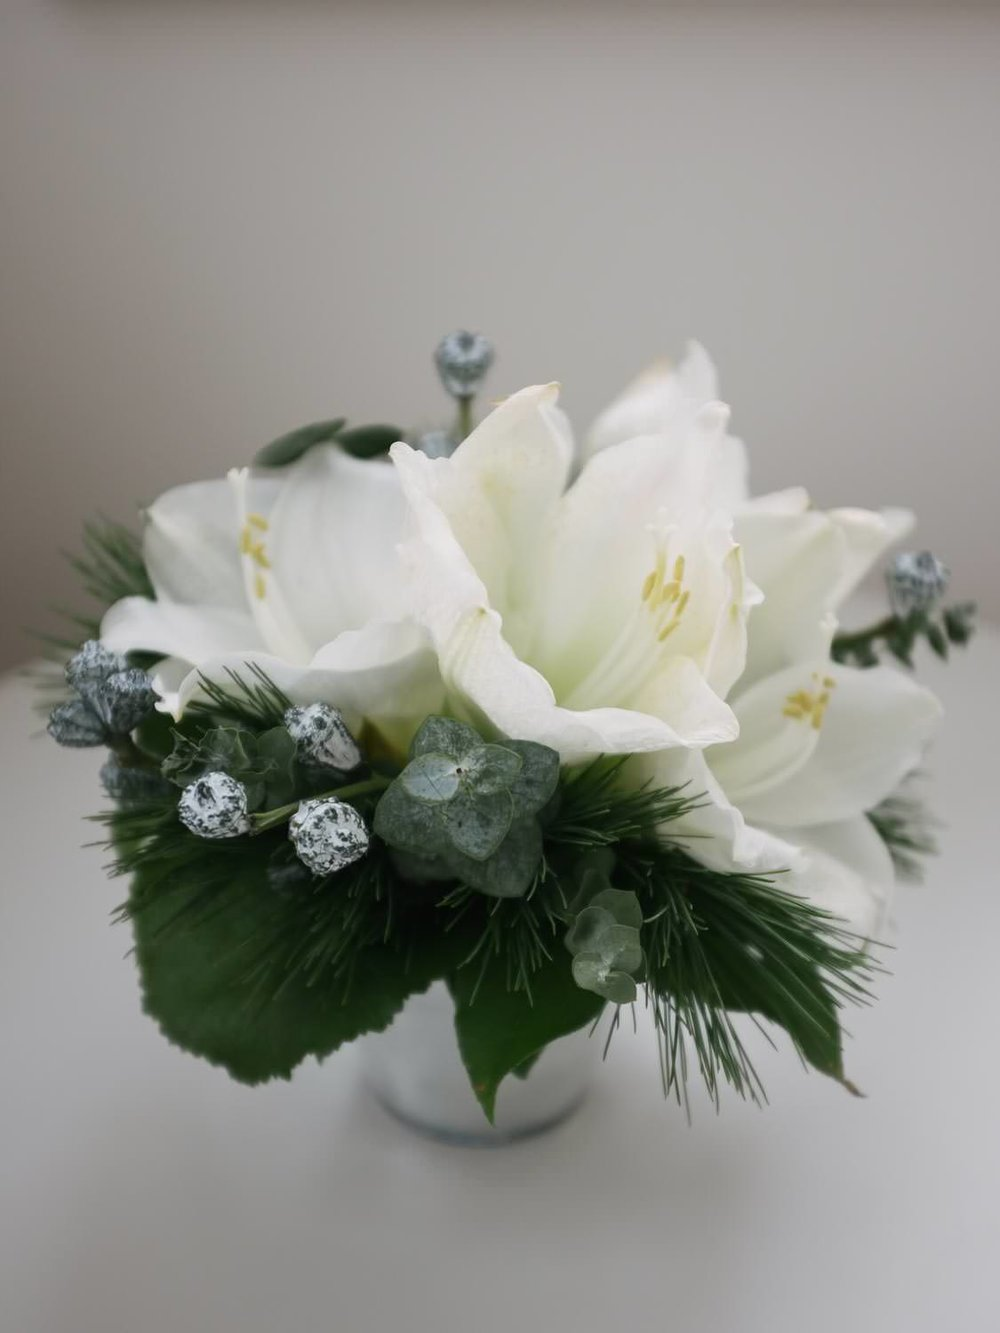 Blumen Flower Hochzeit Wedding Grand Hotel Heiligendamm